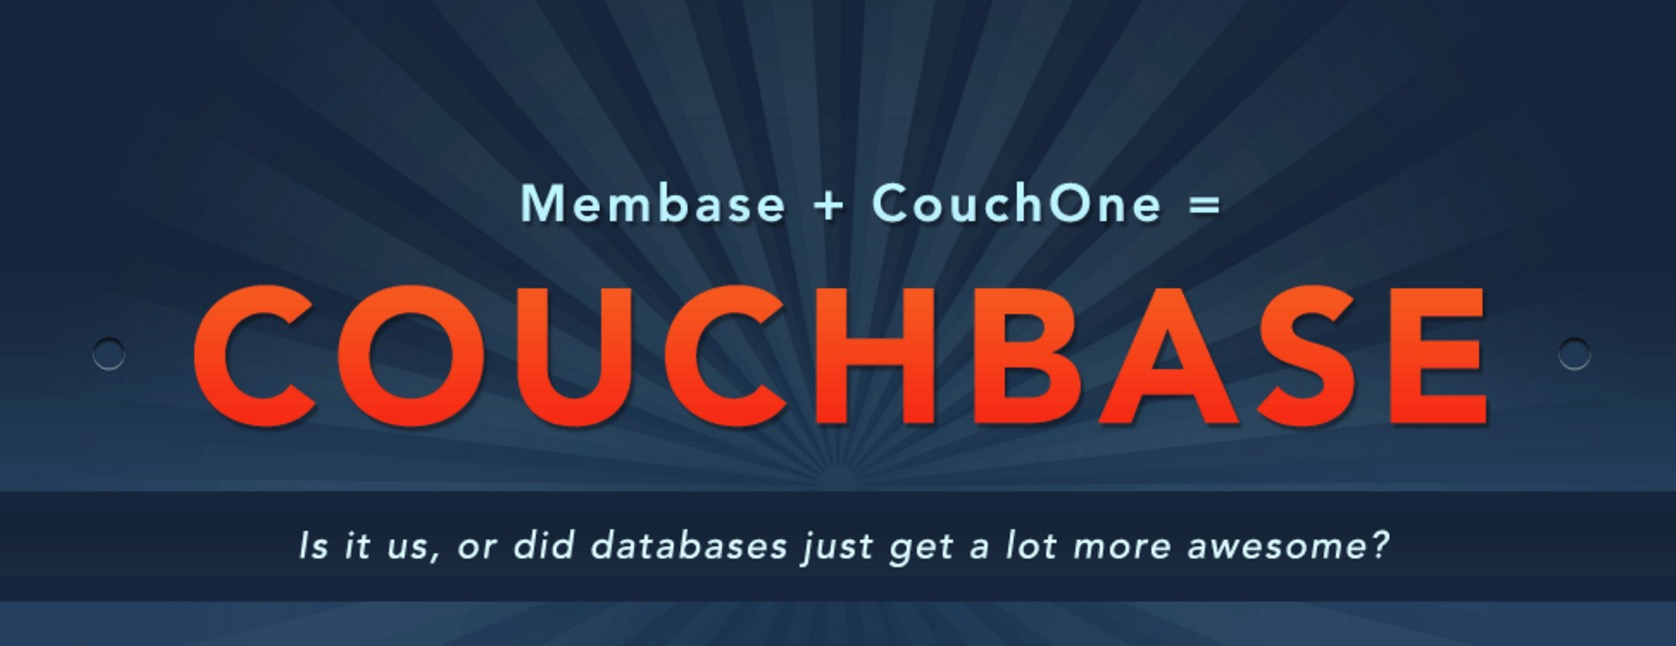 couchbase.png